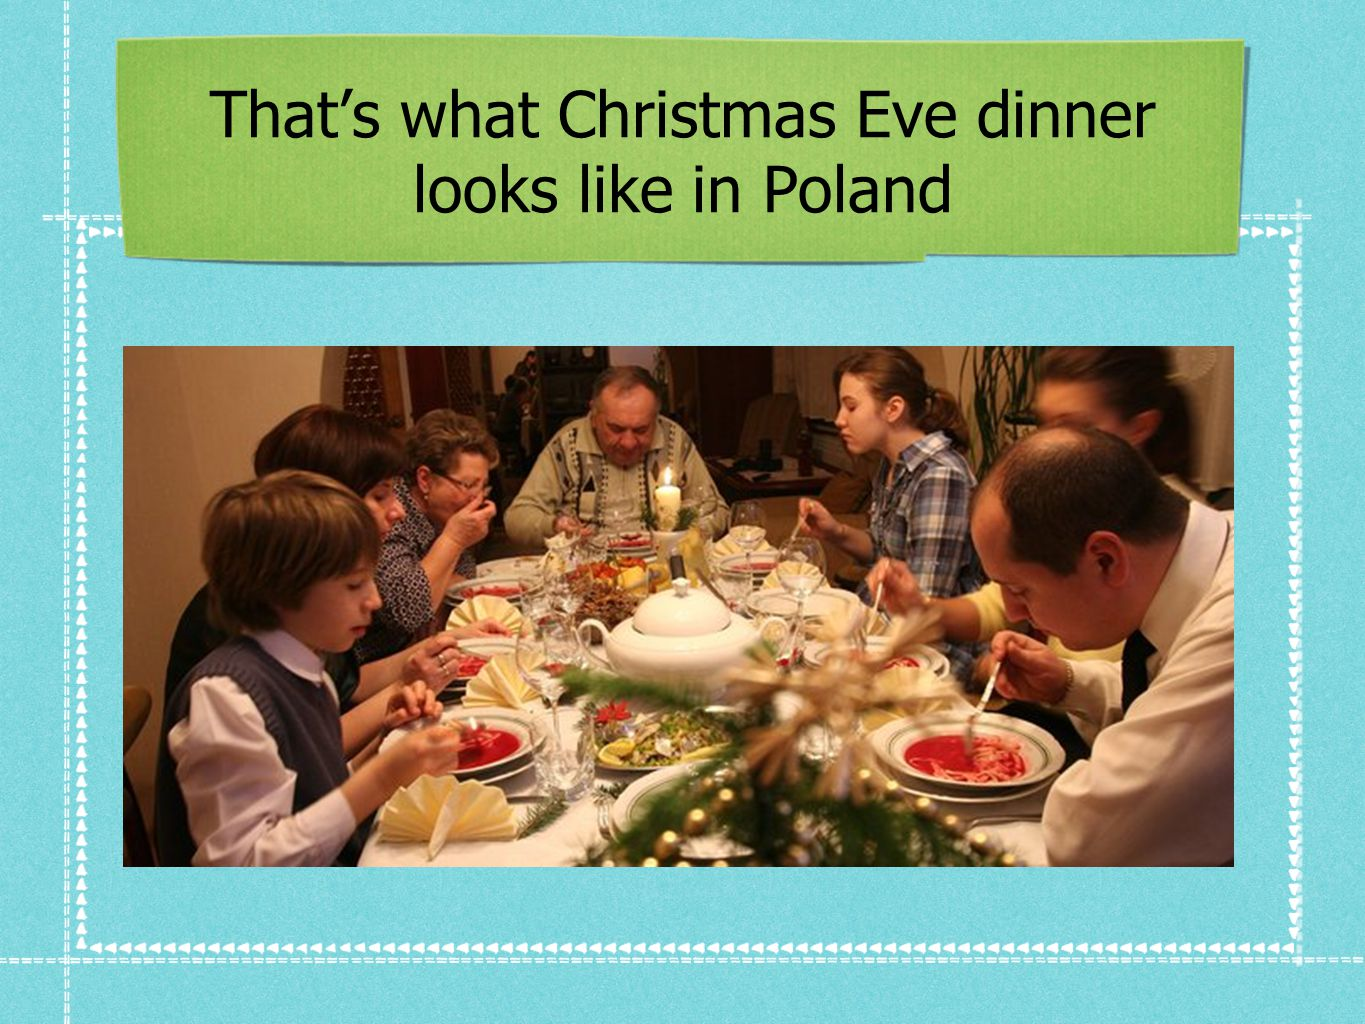 That's what Christmas Eve dinner looks like in Poland